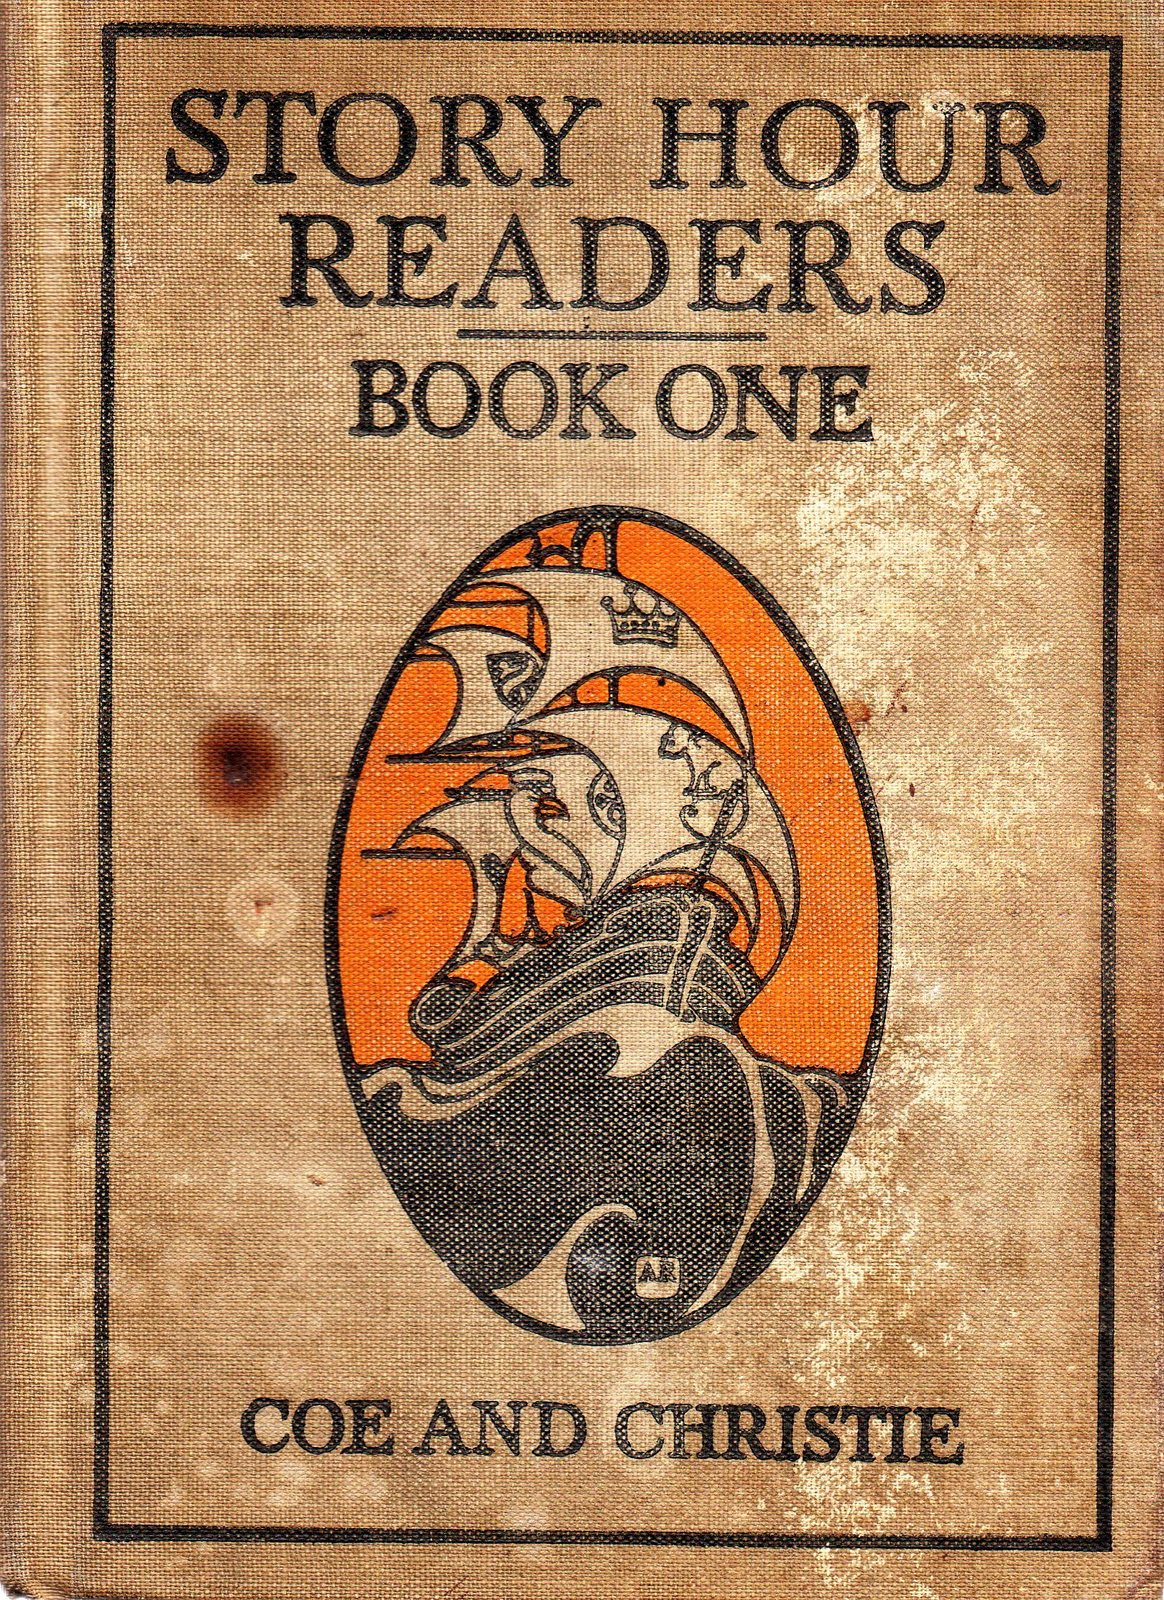 Story Hour Readers Book One (1913) by Ida Coe and Alice J. Christie